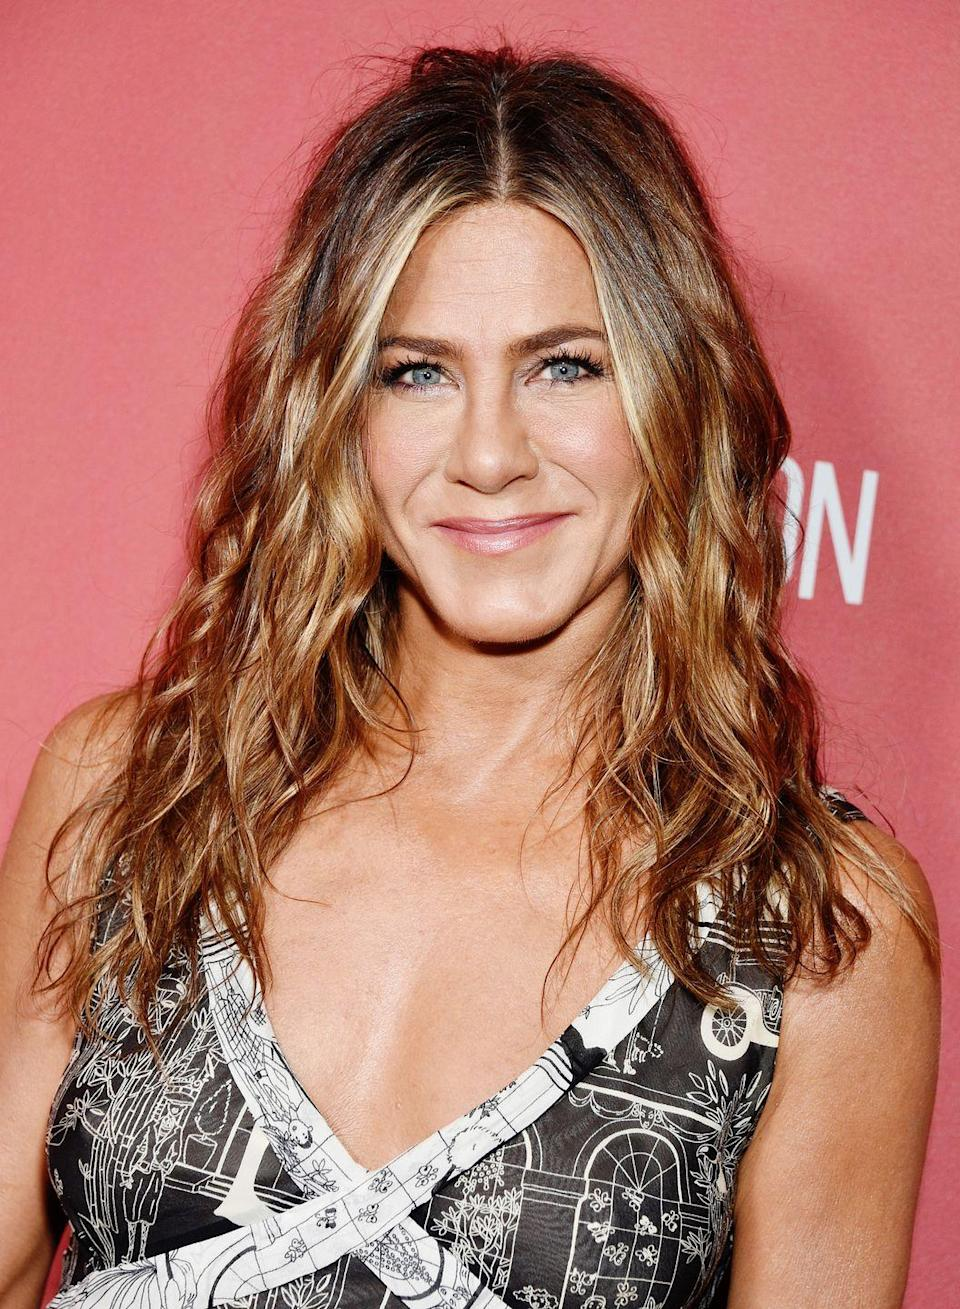 """<p><strong>Real name: </strong>Jennifer Linn Anastassakis<br></p><p>This one wasn't Jen's fault. Her father, soap star John Aniston, actually <a href=""""http://www.zimbio.com/Celebrities+We+Can't+Blame+for+Changing+Their+Names/articles/h0Z7DcFxyZV/Jennifer+Aniston"""" rel=""""nofollow noopener"""" target=""""_blank"""" data-ylk=""""slk:changed their family's name"""" class=""""link rapid-noclick-resp"""">changed their family's name</a>, Anastassakis, to get more work. </p>"""